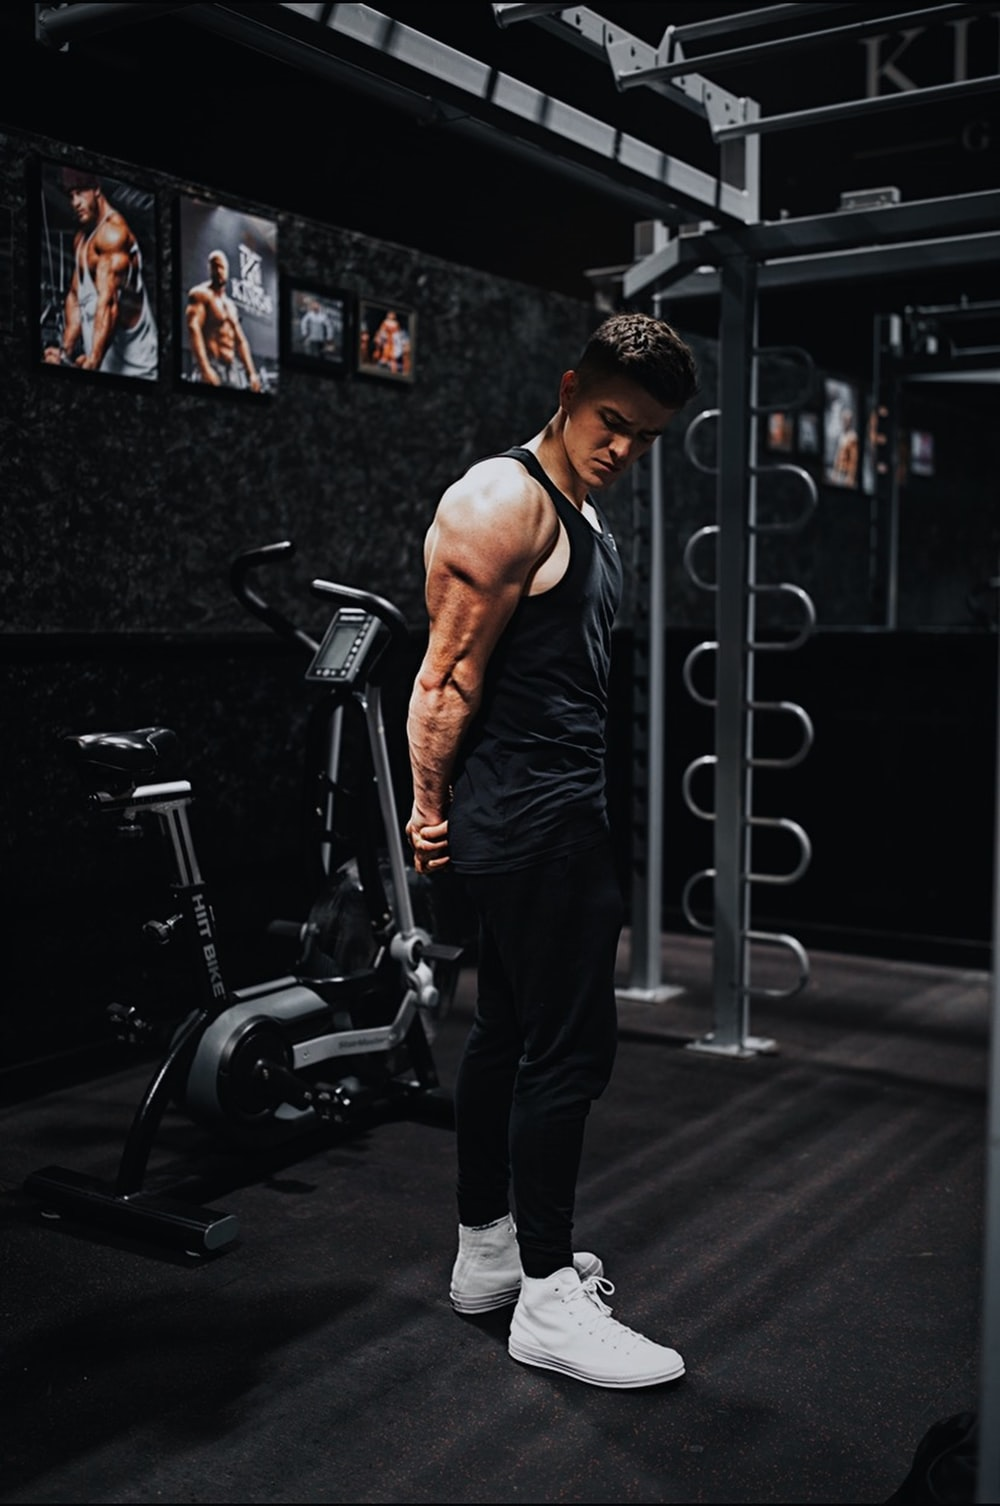 man in black tank top and black pants standing on black exercise equipment